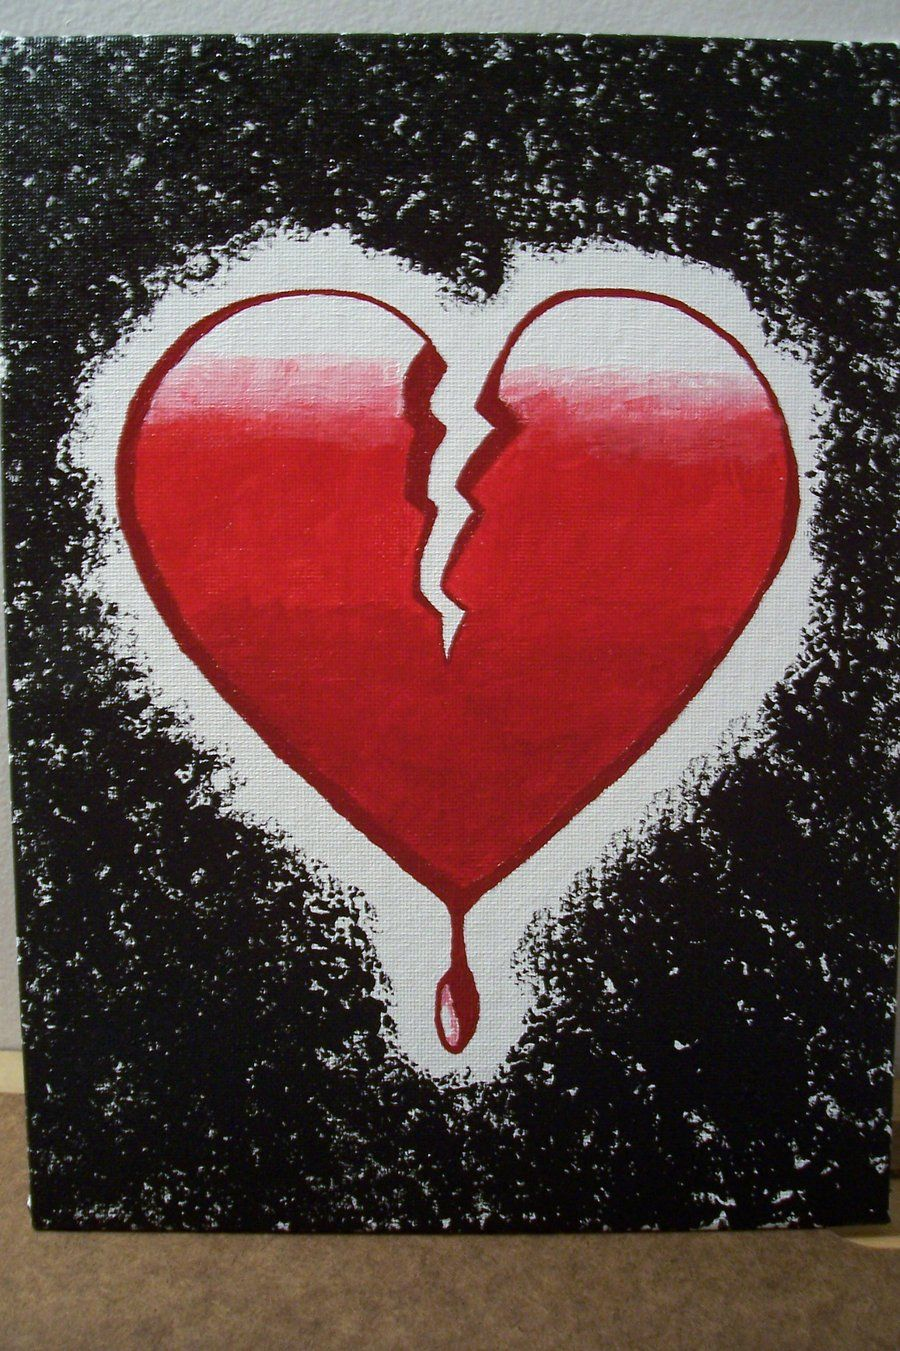 Bleeding Broken Heart By Brandyeleanor On Deviantart Broken Heart Tattoo Broken Heart Drawings Broken Heart Pictures